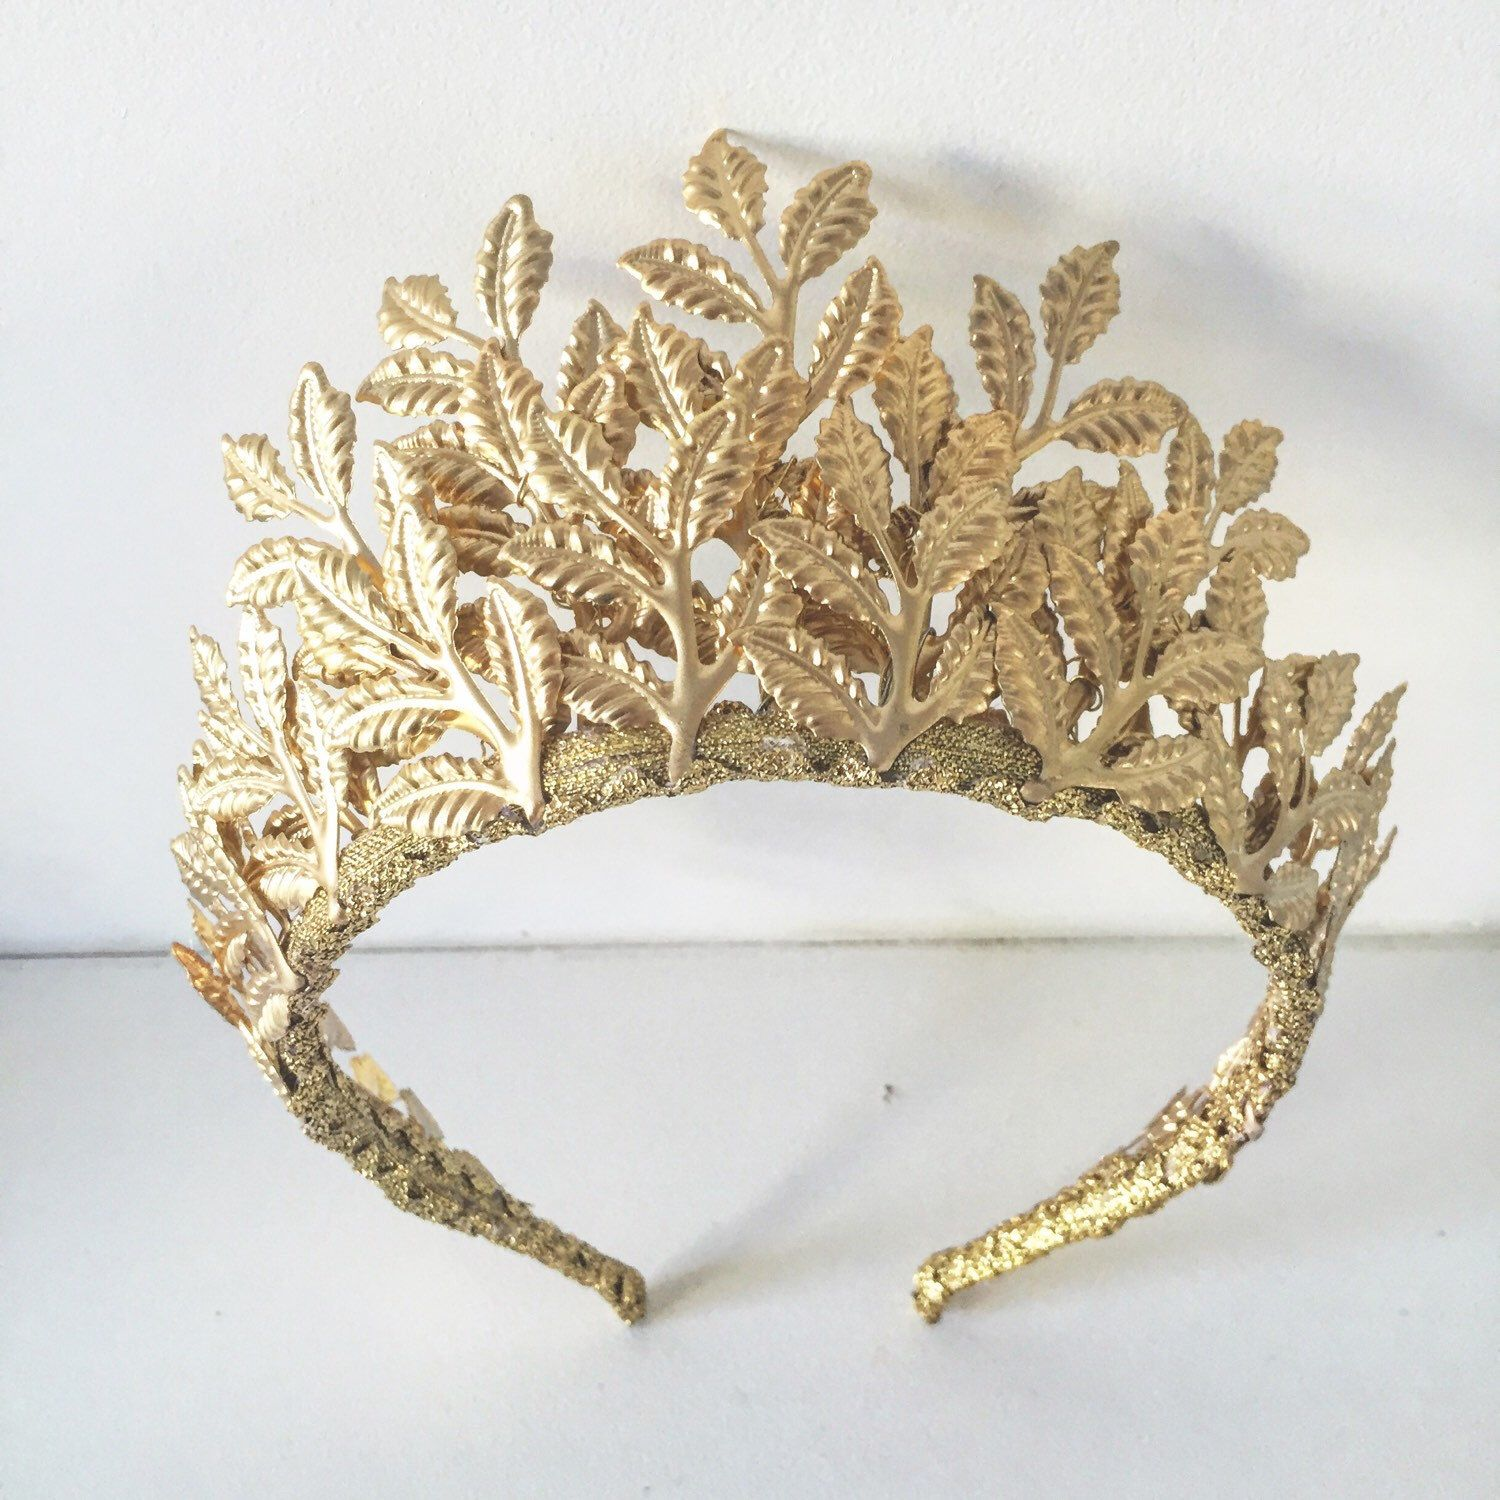 Items similar to The Aura - Gold Leaf Crown - weddings or other special occasions. on Etsy